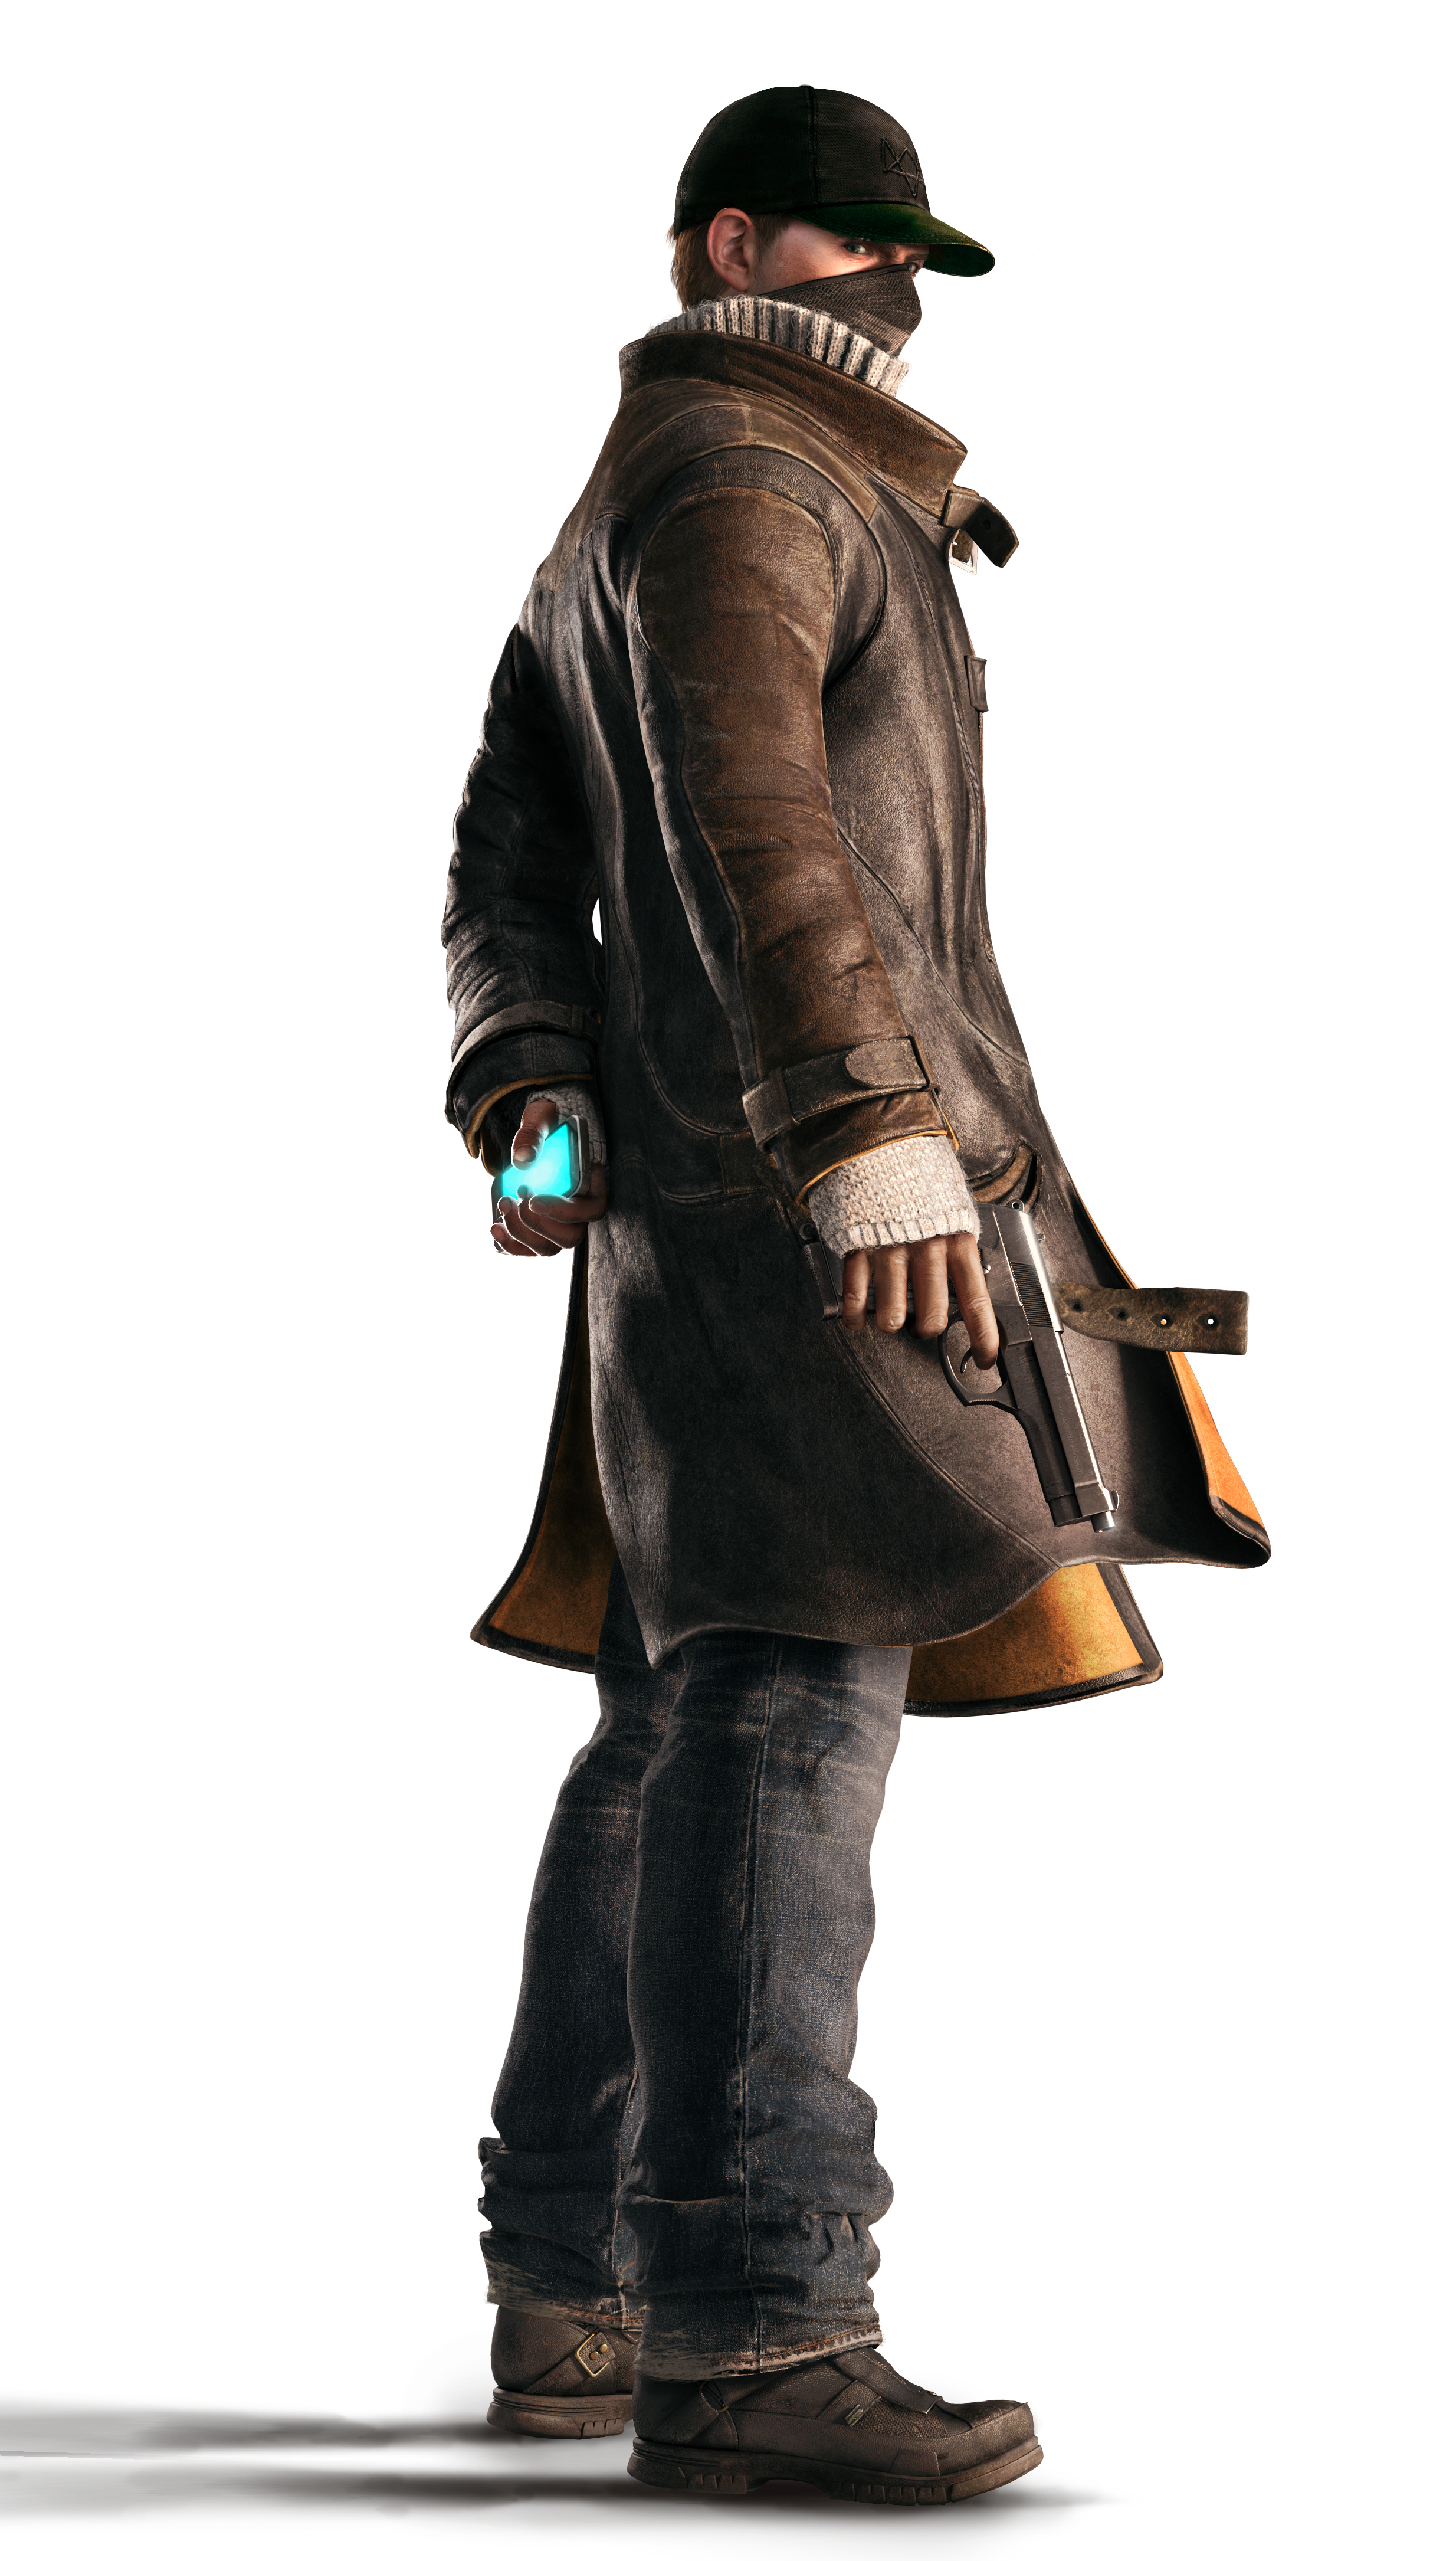 Aiden Pearce Watch Dogs Wiki Fandom Images, Photos, Reviews